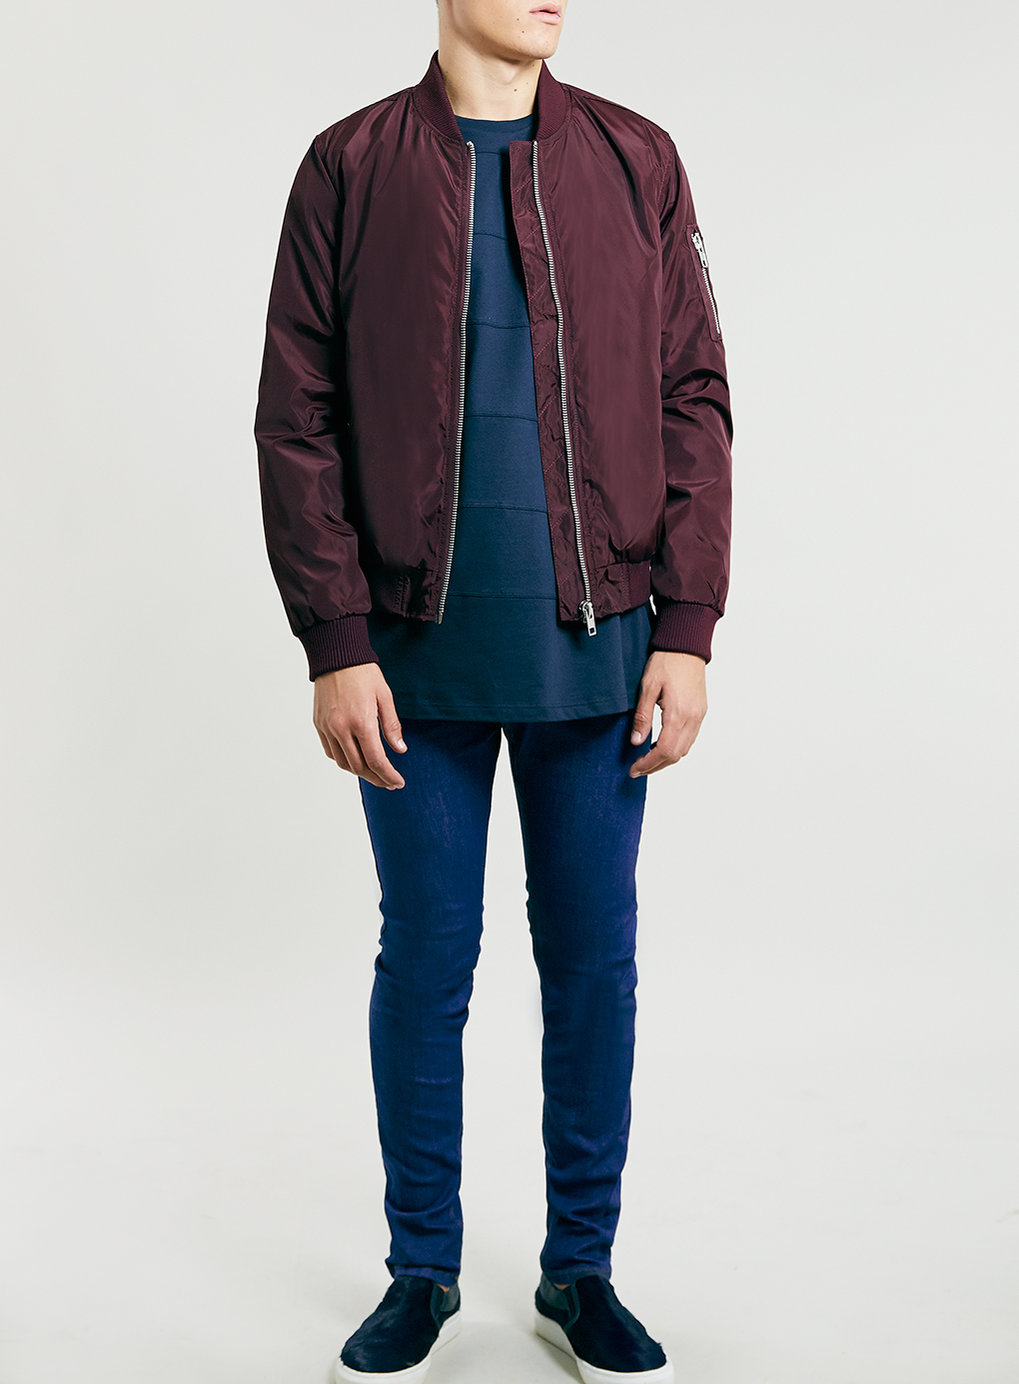 375601e80 TOPMAN Burgundy Heavyweight Bomber Jacket in Purple for Men - Lyst